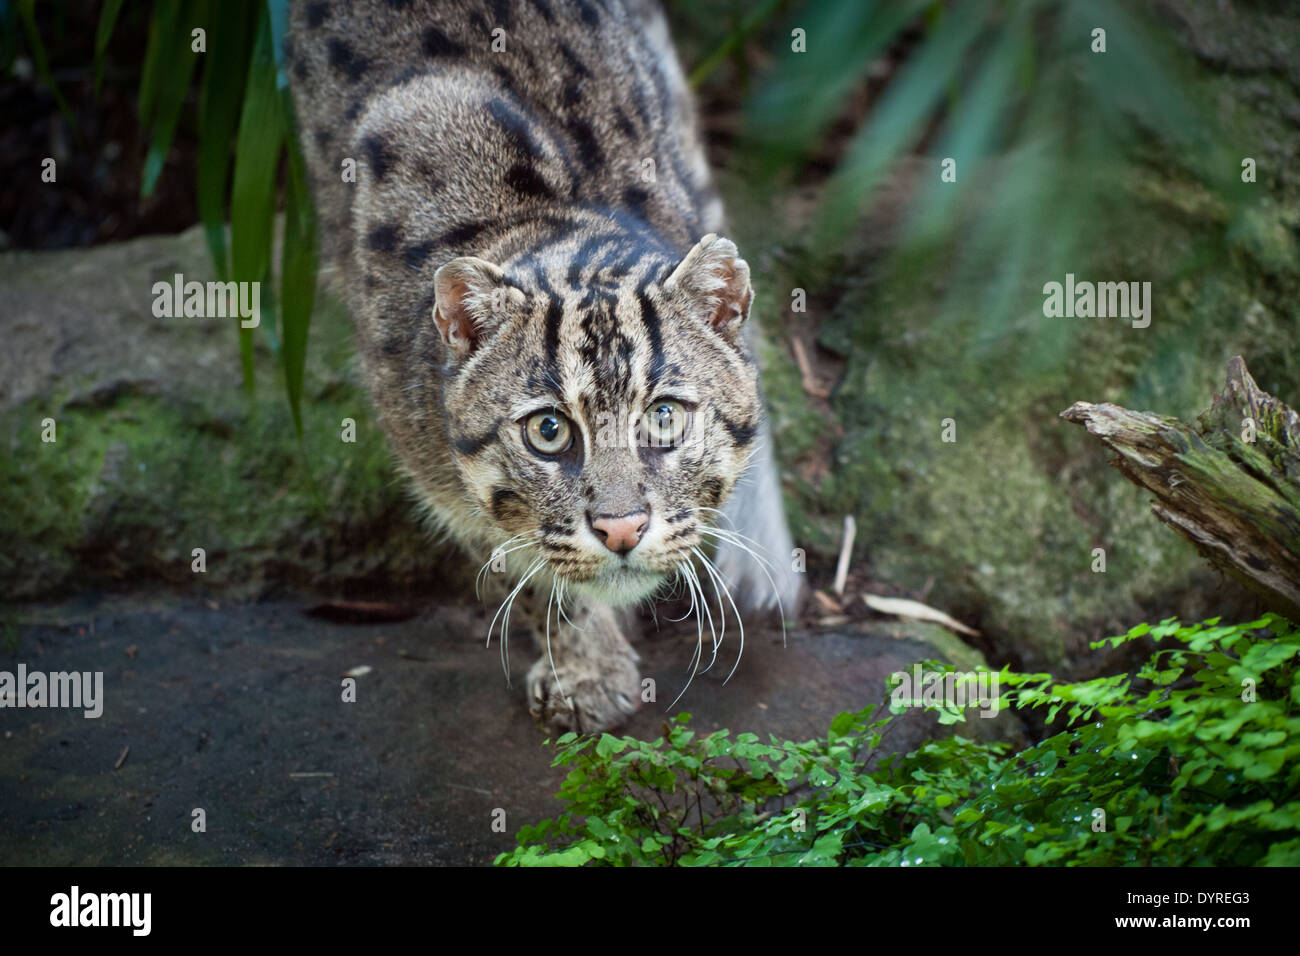 A view of a captive fishing cat prionailurus viverrinus for The fishing cat